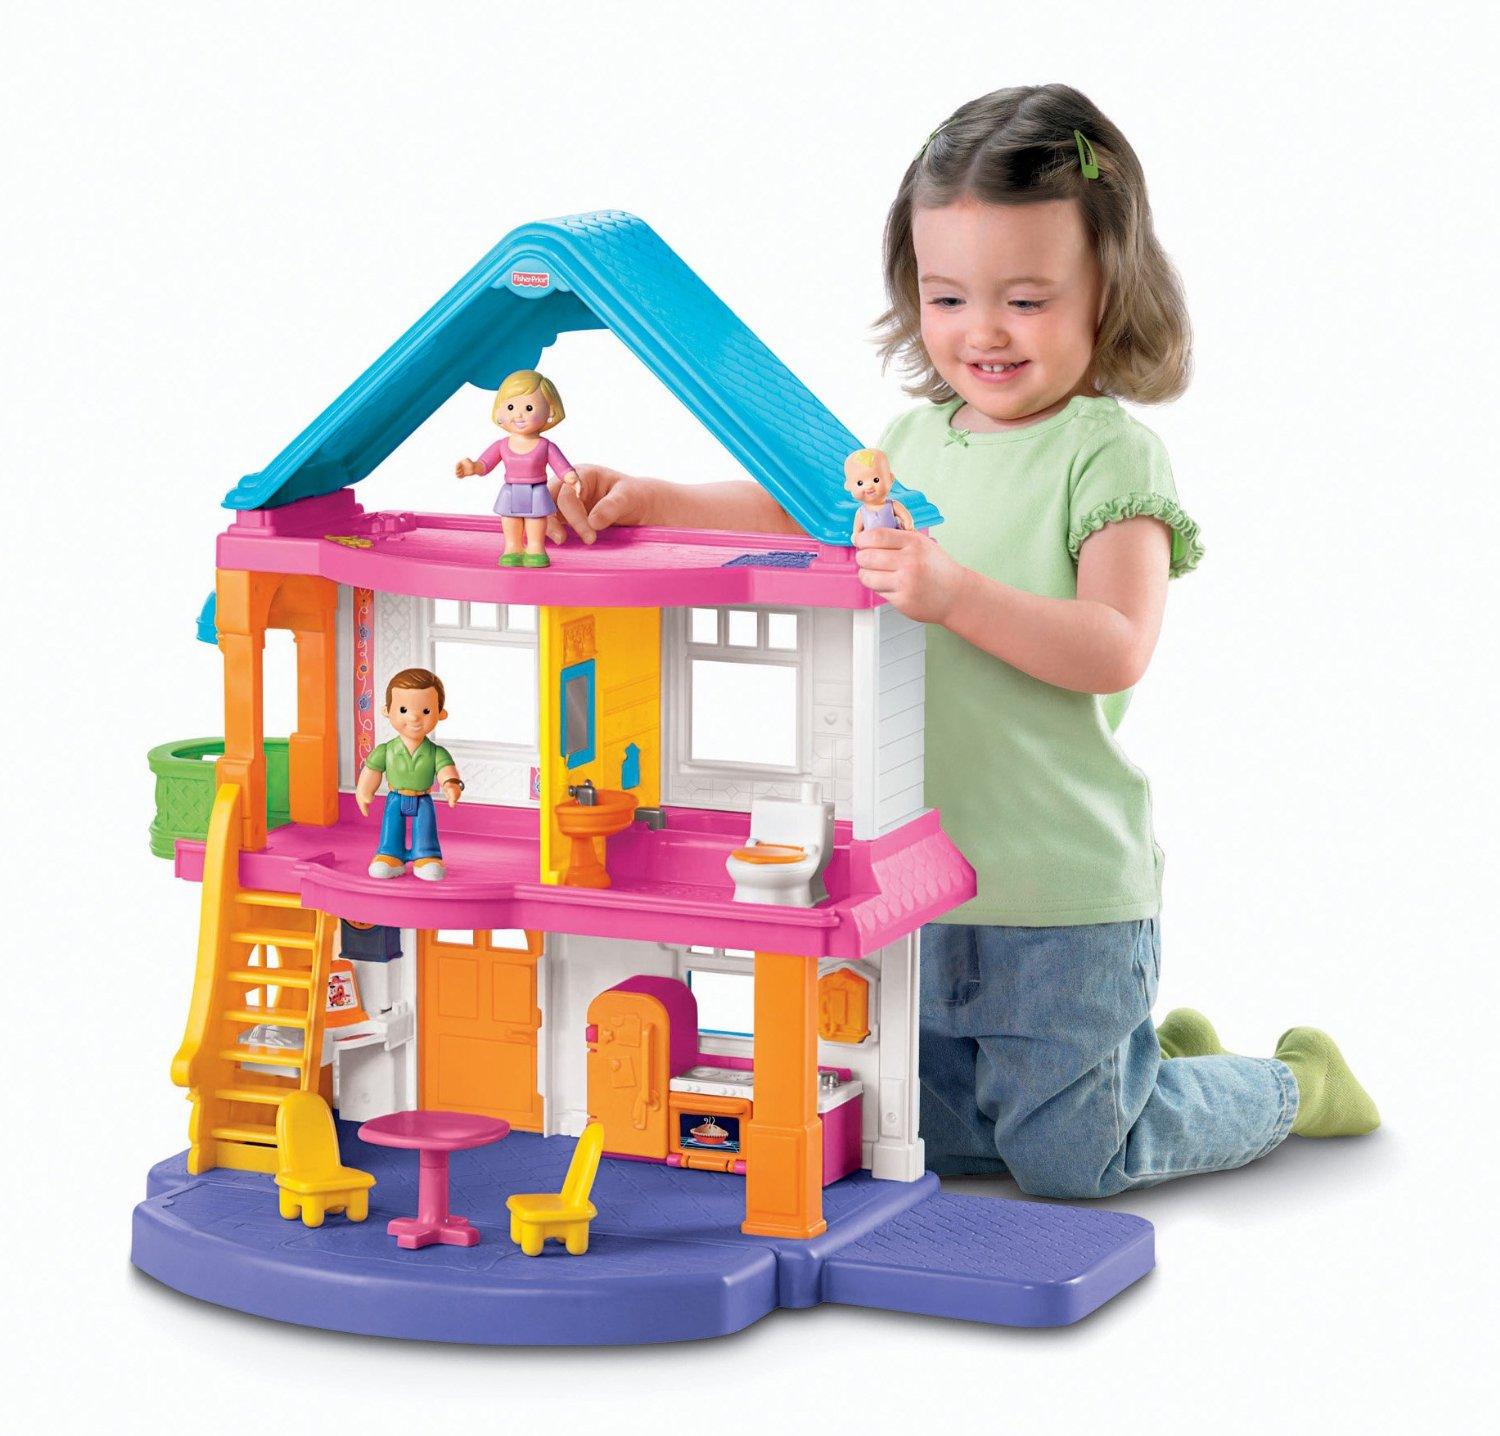 Toddler Dollhouse Fisher Price My First Dollhouse Review